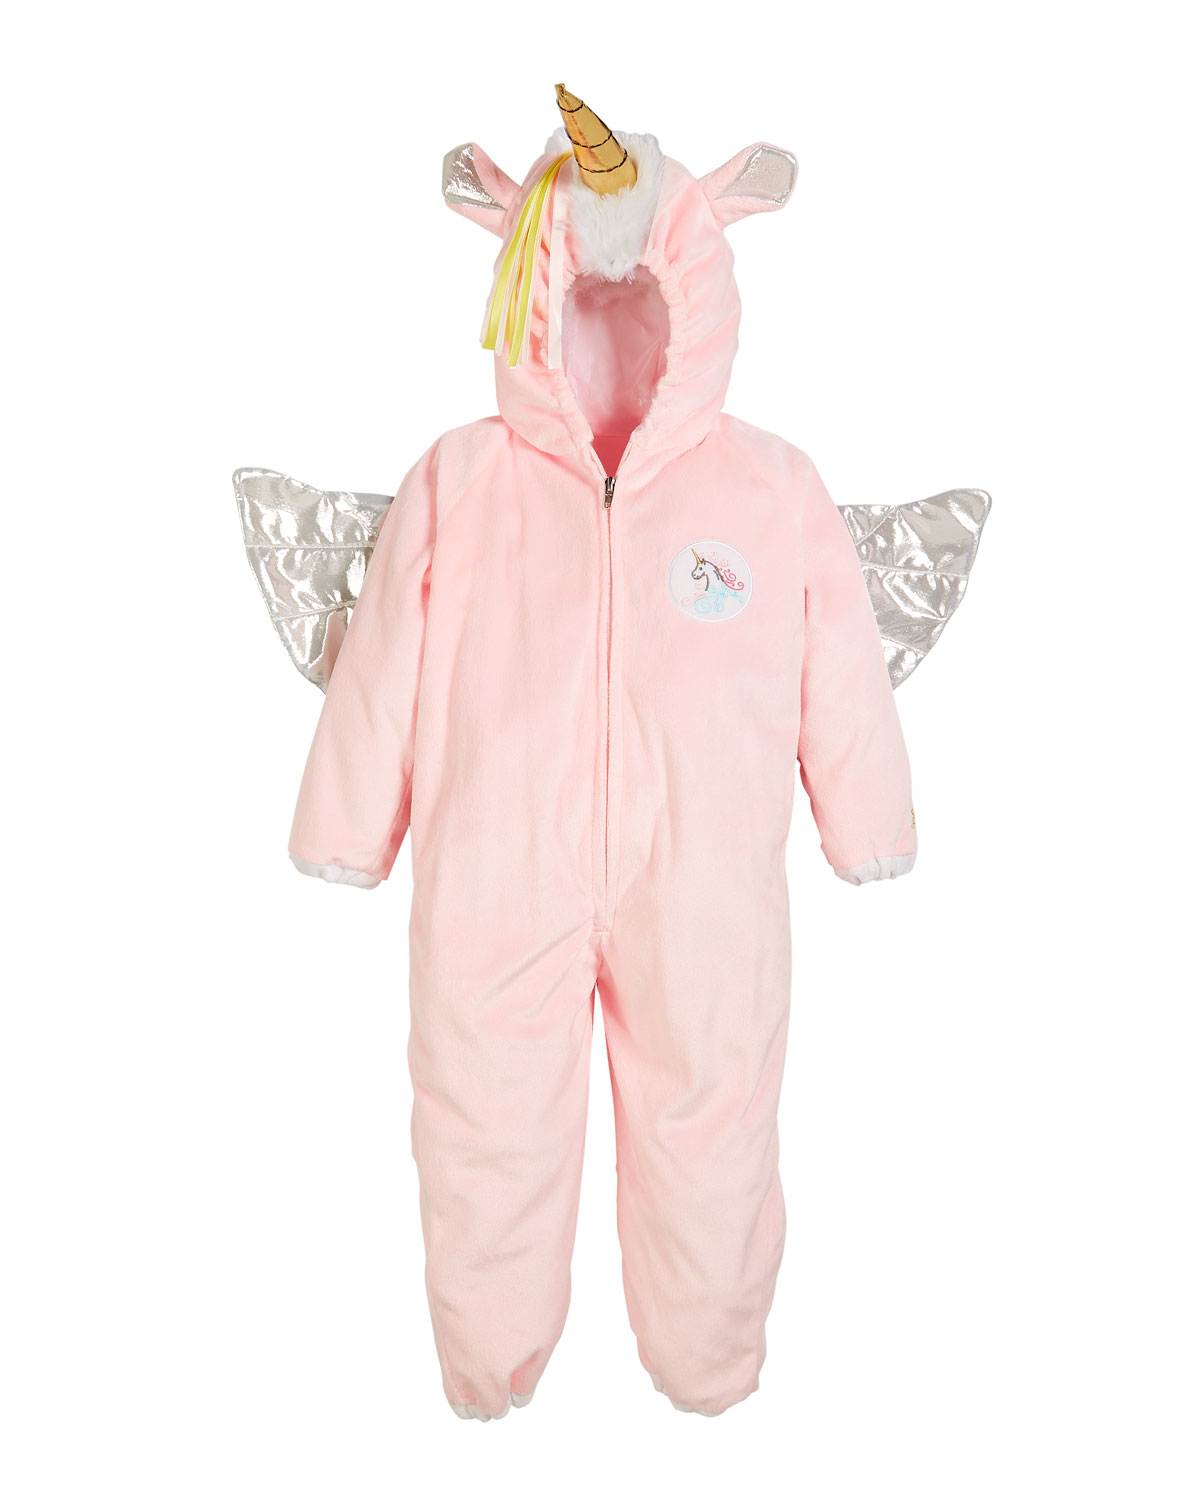 Kids Unicorn Jumpsuit Costume 78 Years